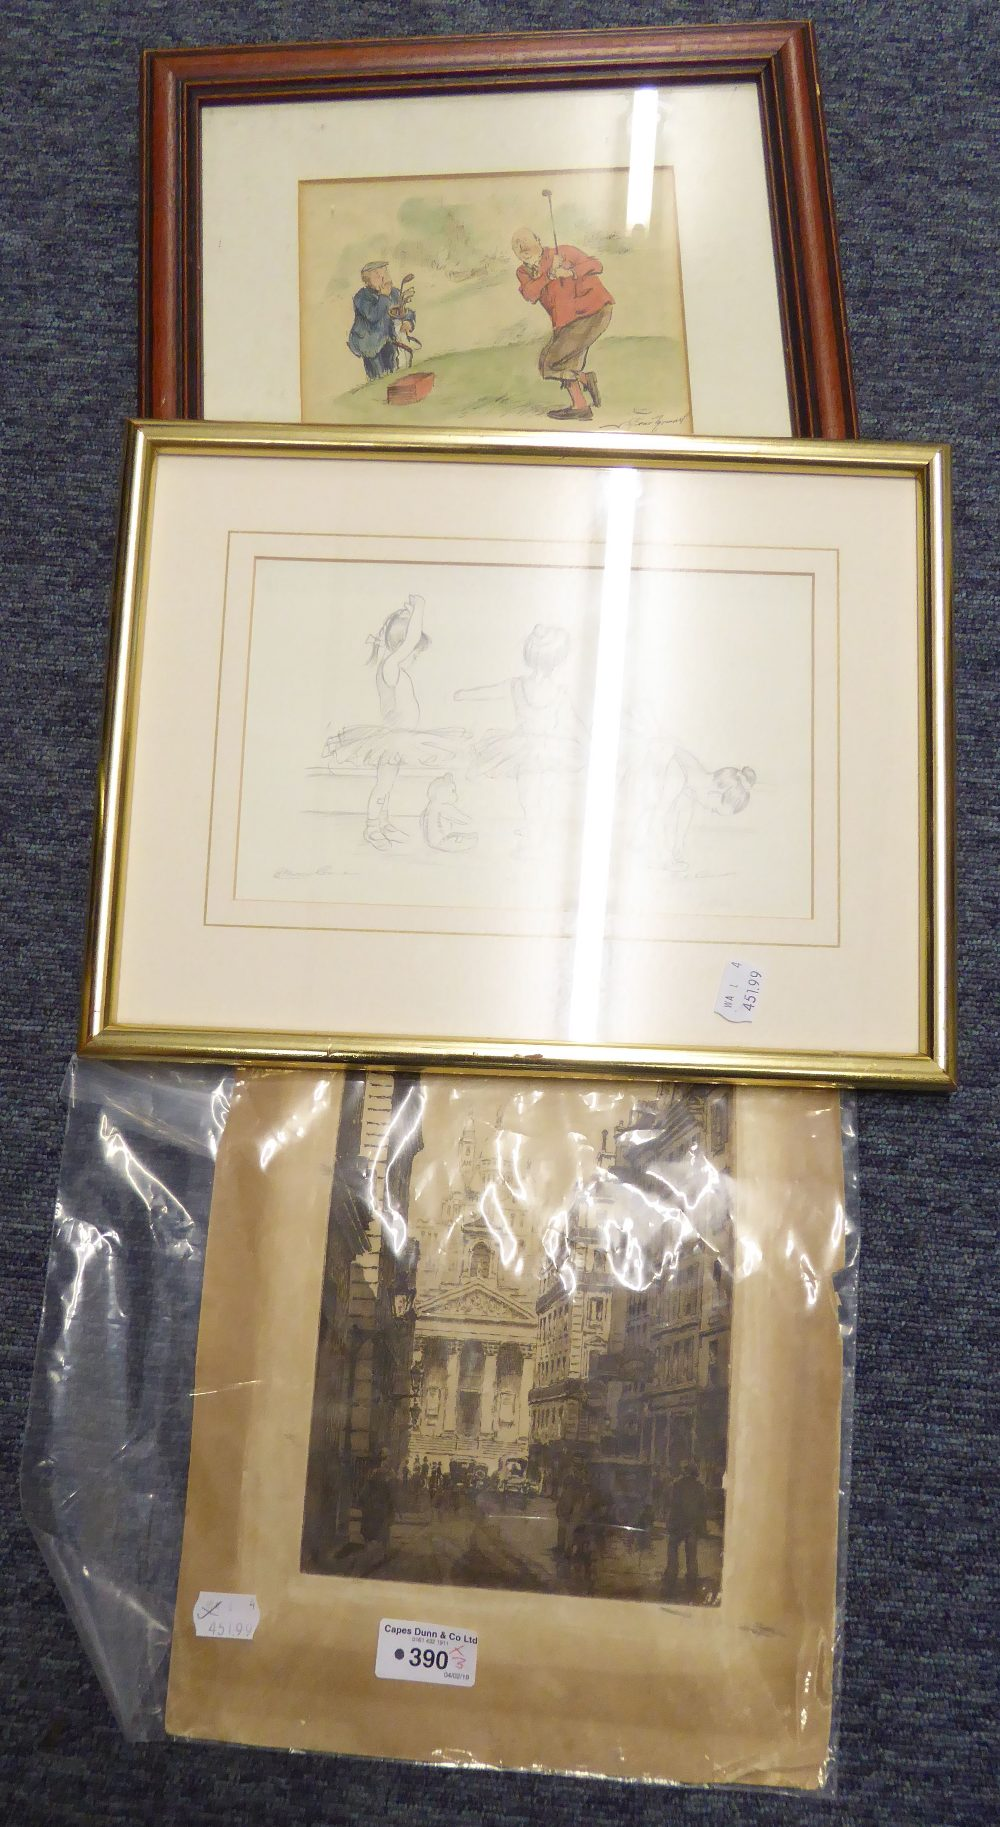 Lot 390 - ORIGINAL ETCHING 1920's CITY STREET SCENE UNFRAMED STEVE O'CONNELL SIGNED LIMITED EDITION PRINT '